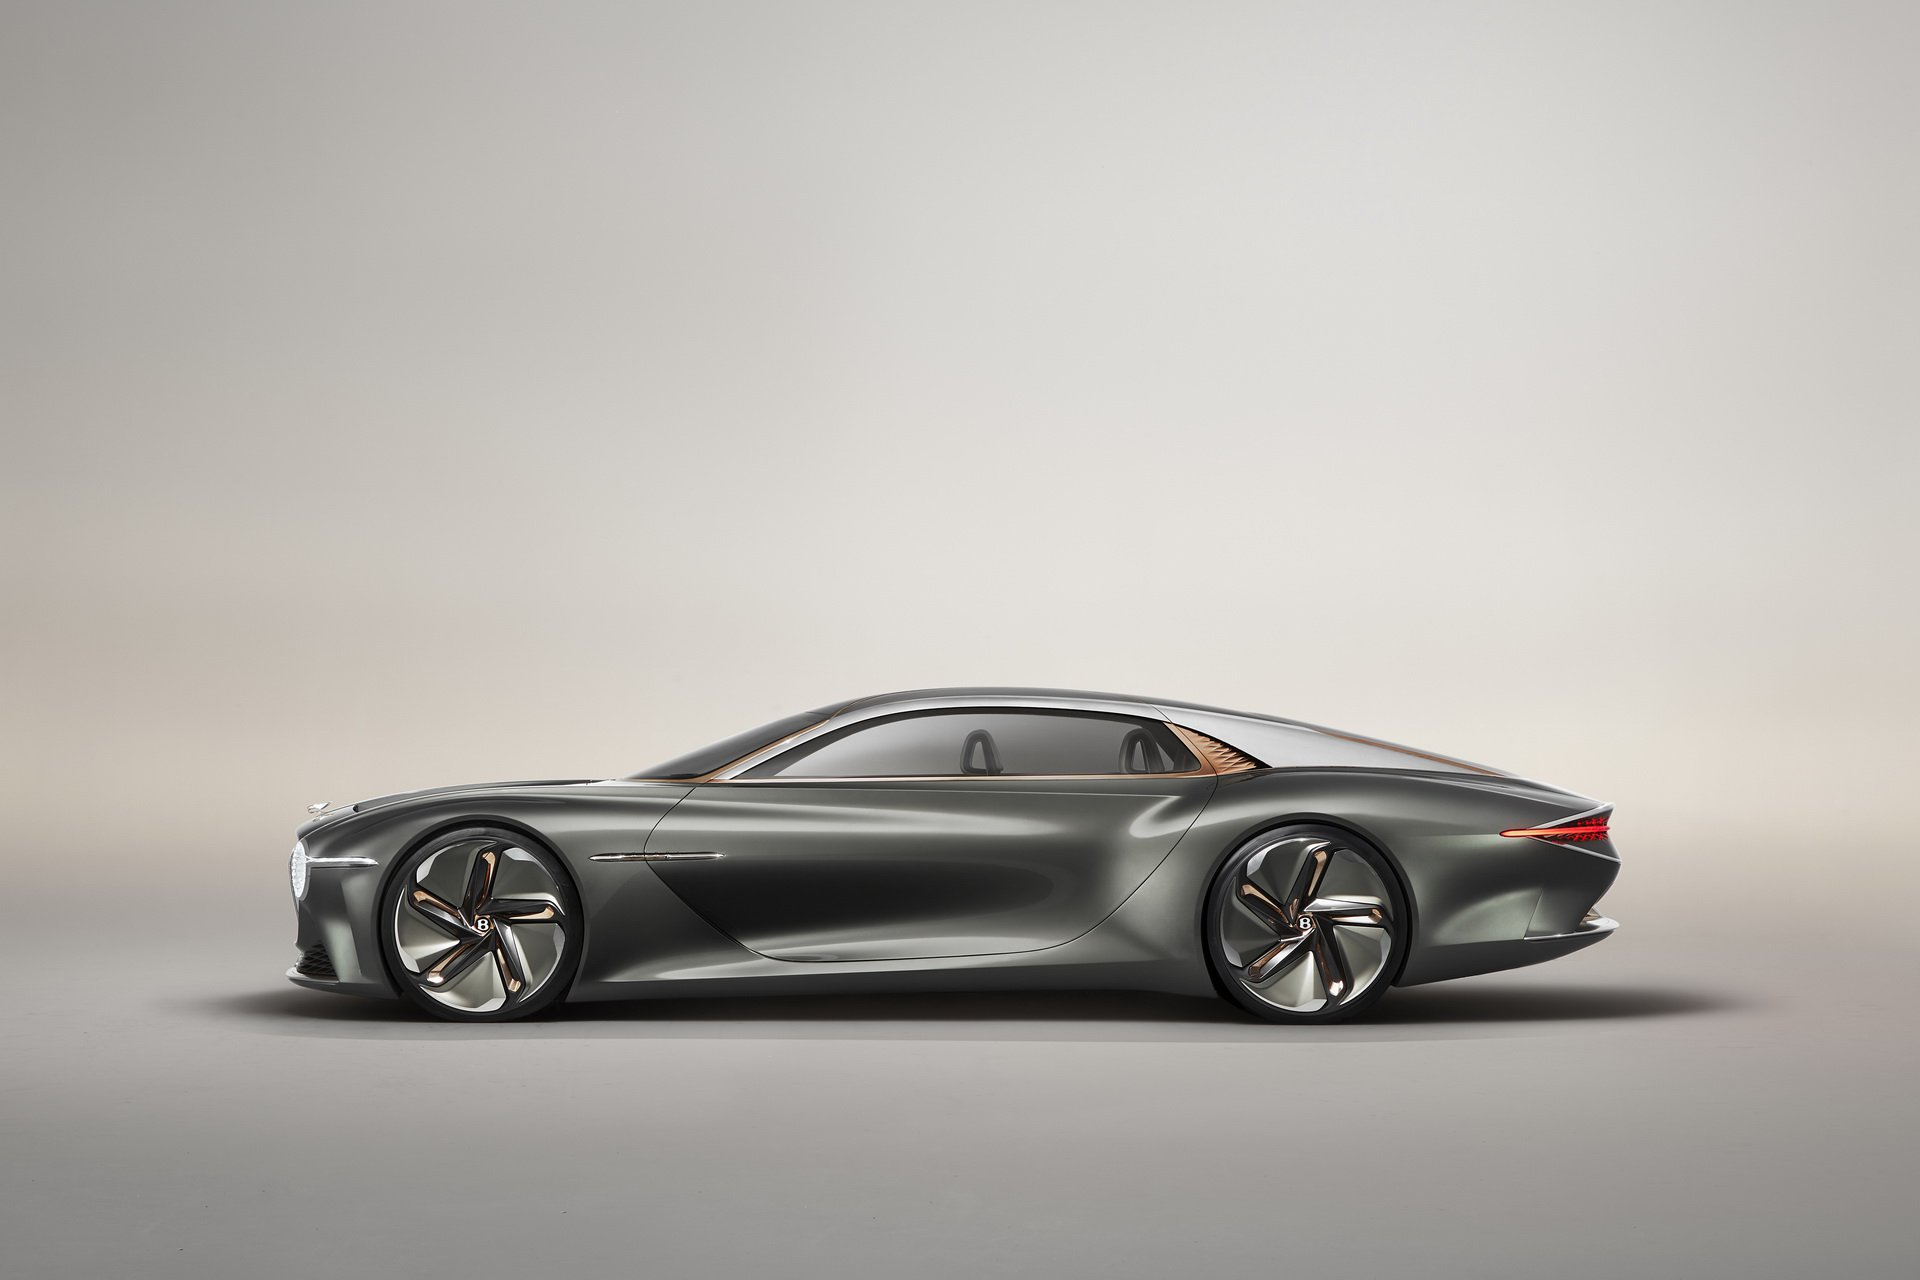 One hundred years in business is no joke. Bentley decided to indulge itself and treat us all to something special by building this unique EXP 100 GT Concept.